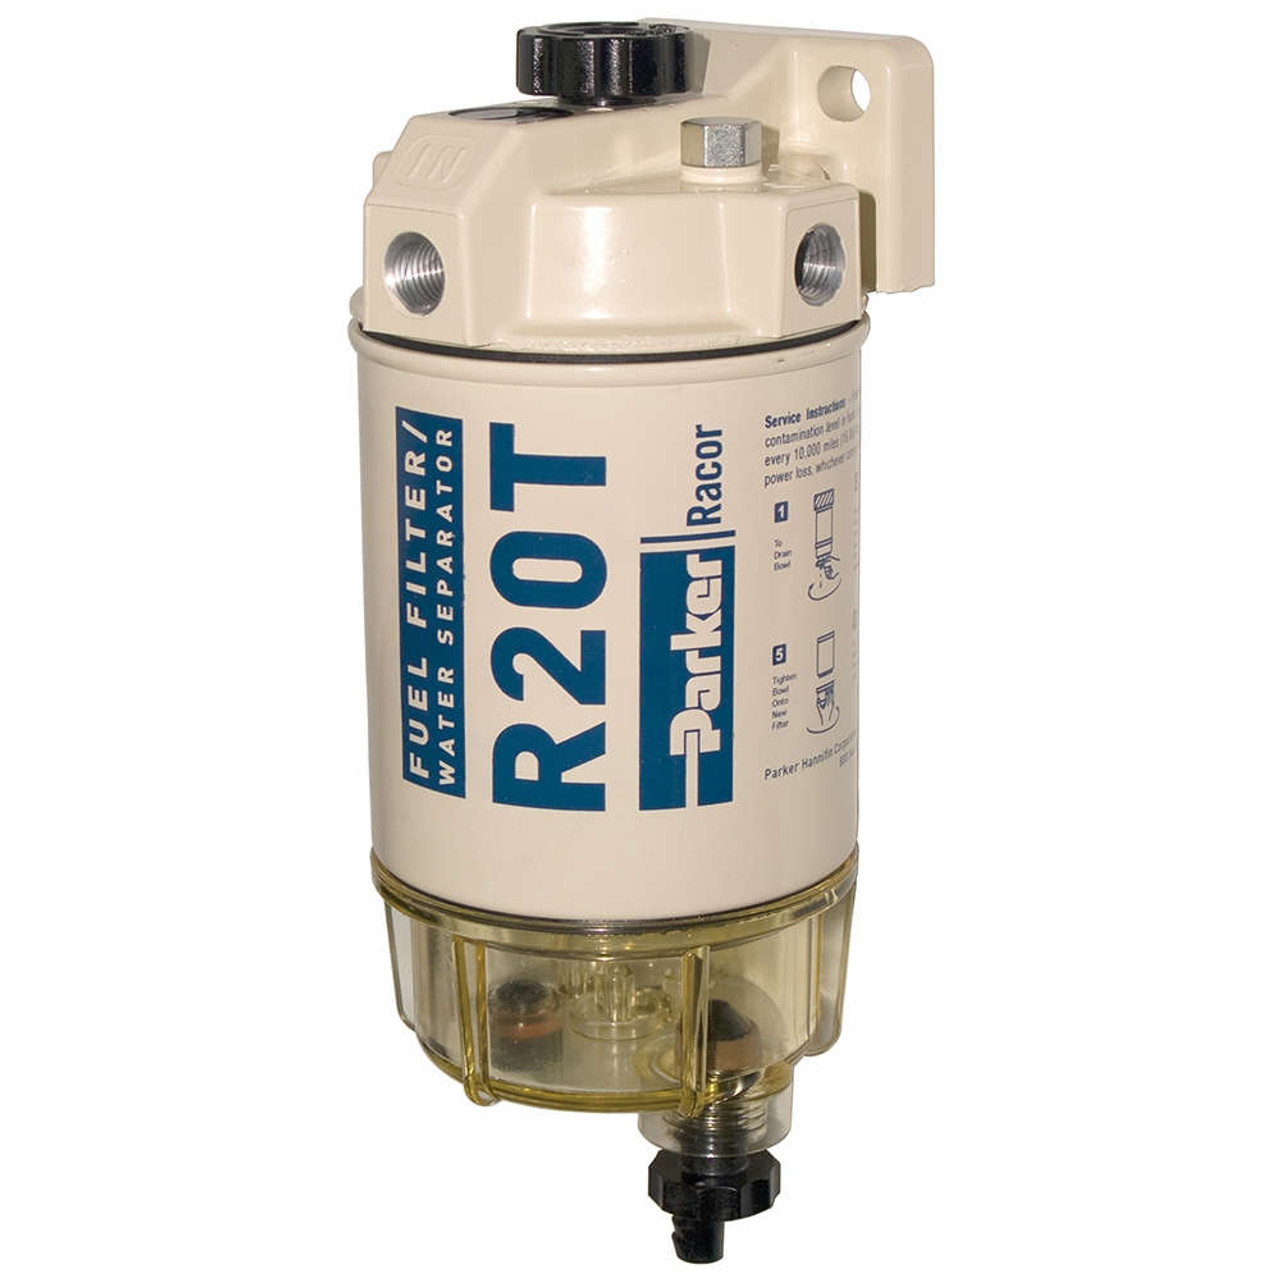 Racor 200 Series 30 GPH Low Flow Diesel Fuel Filter/Water Separator 230  Filter Assembly